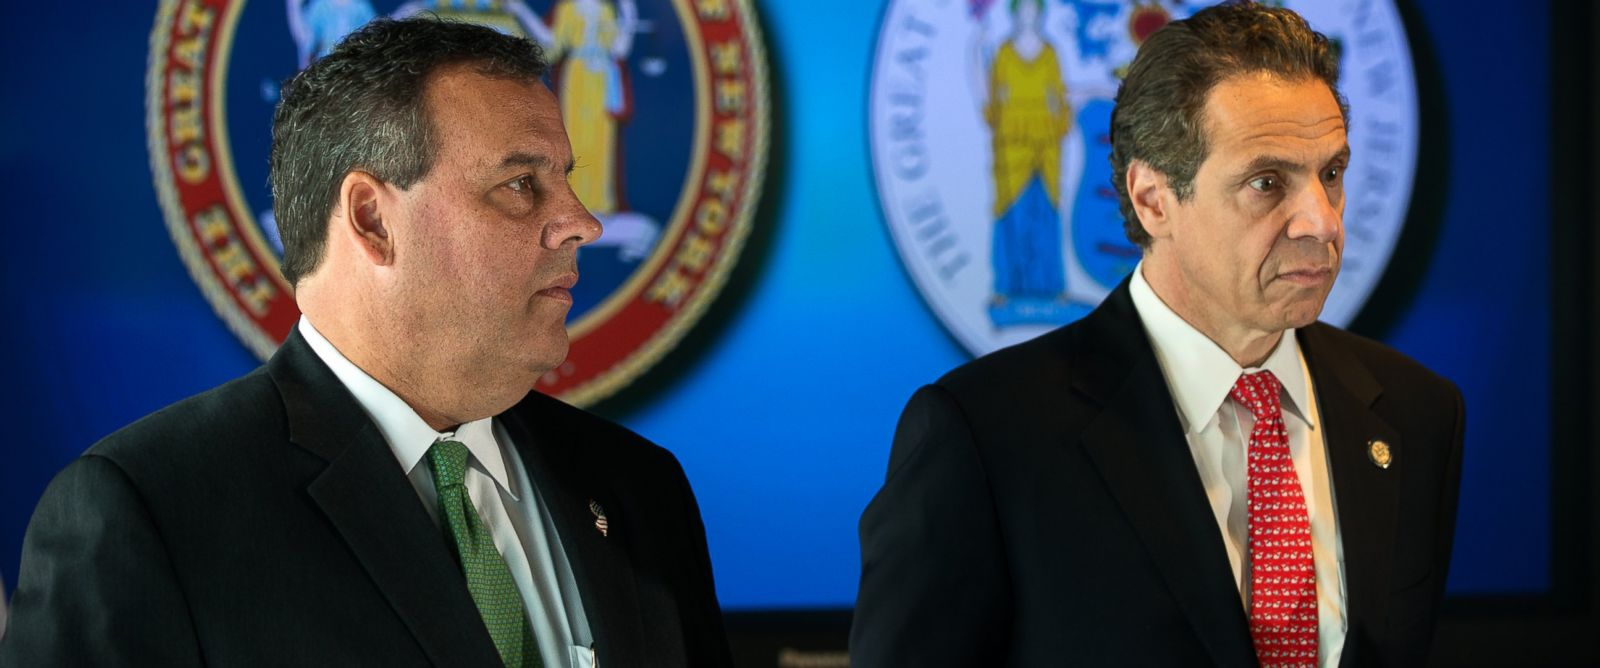 PHOTO: N.J. Gov. Chris Christie, left, and N.Y. Gov. Andrew Cuomo, right, are pictured on Sept. 24, 2014 in New York City.